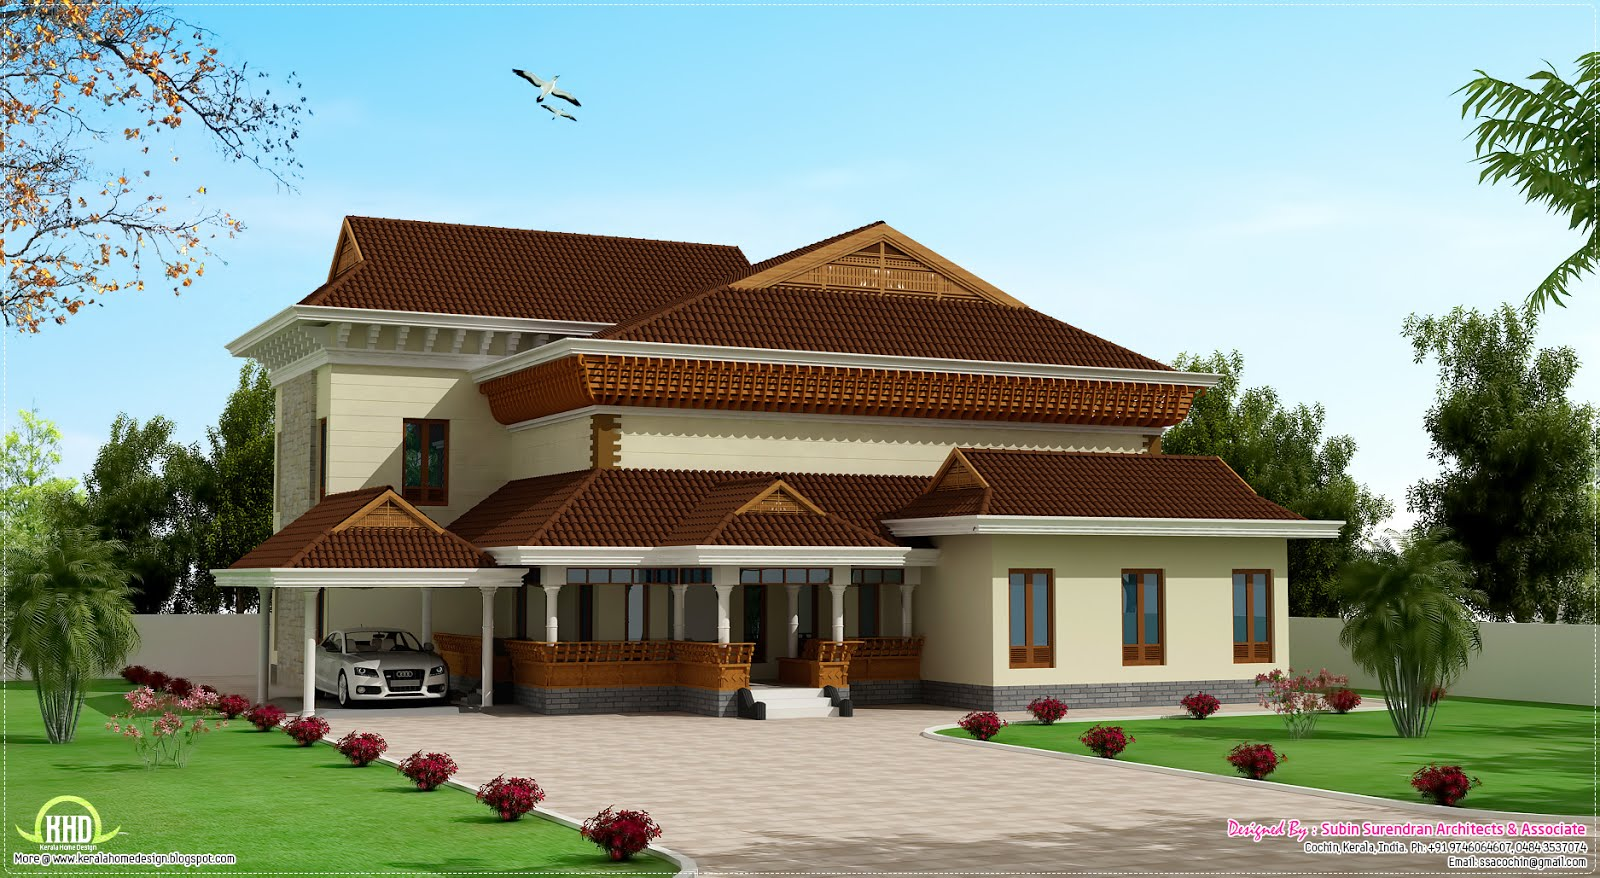 Architecture Design Kerala Model january 2013 - kerala home design and floor plans